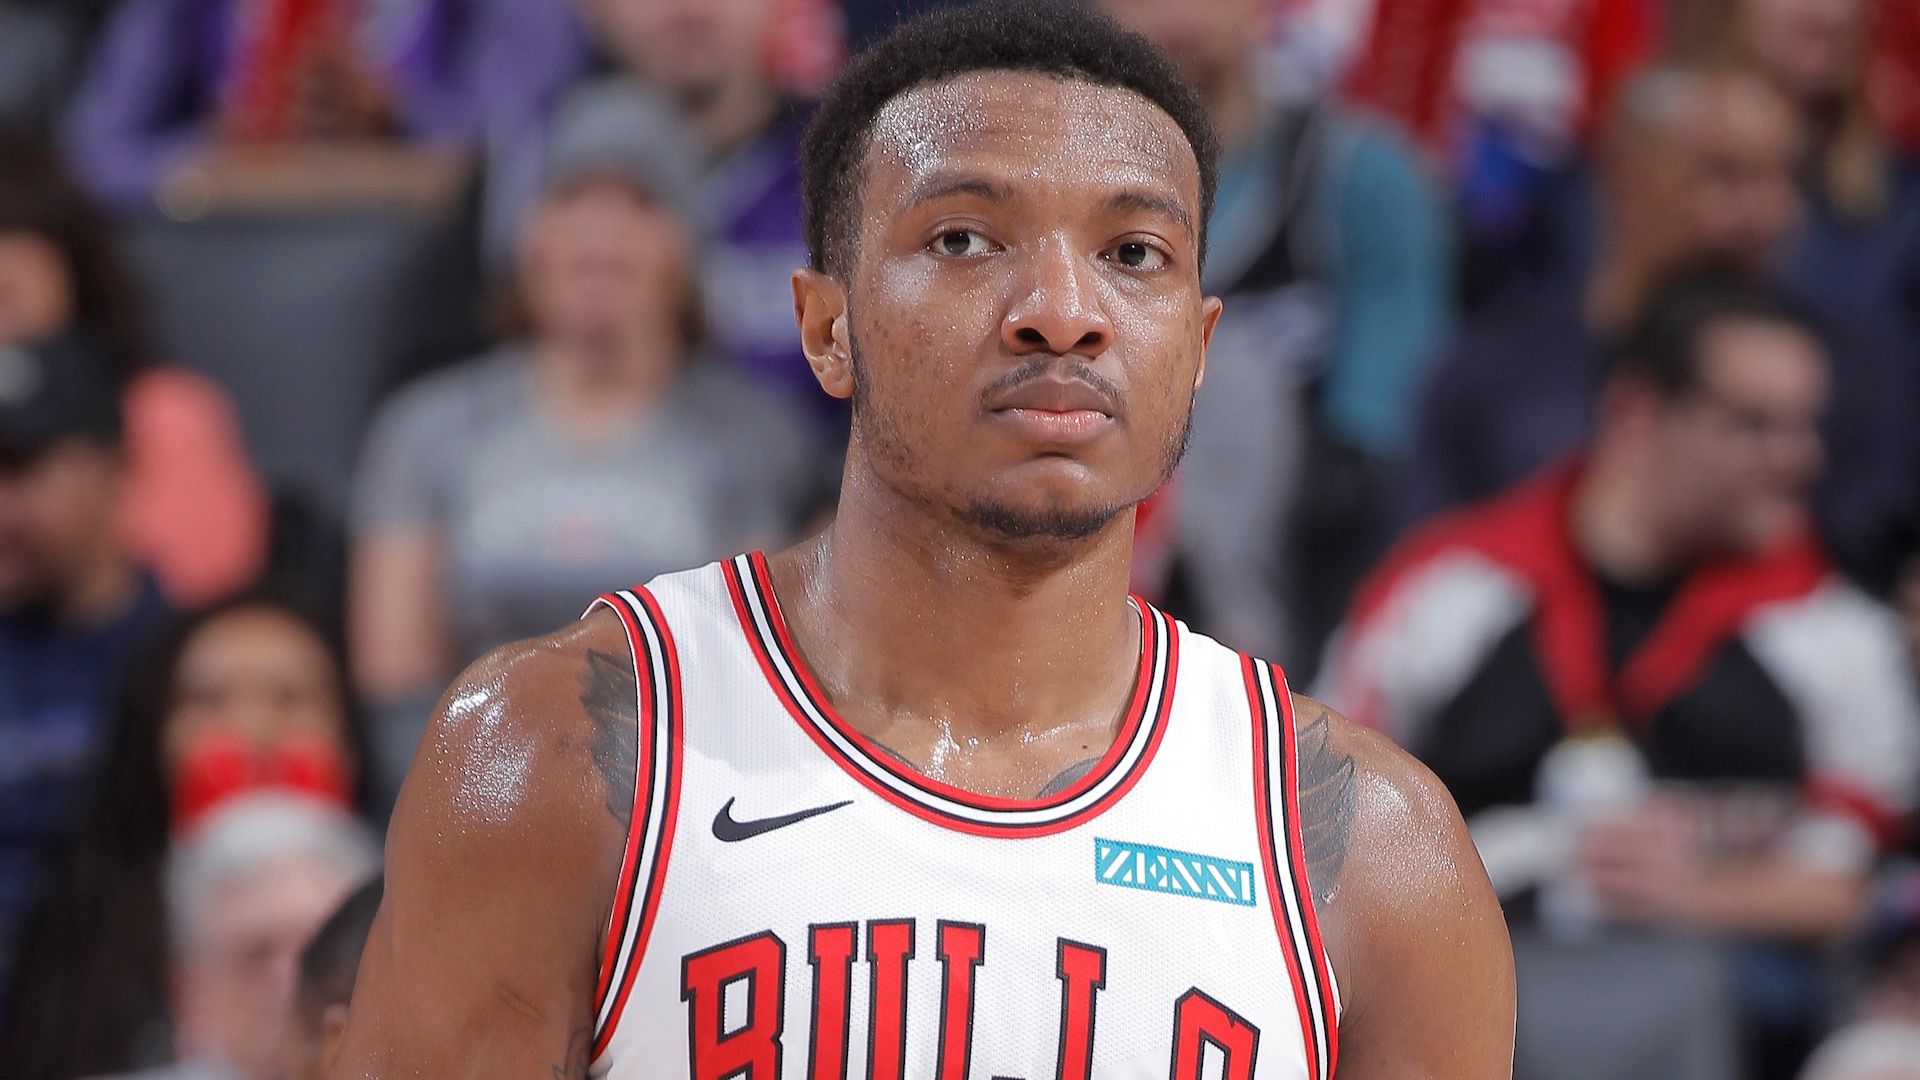 Wendell Carter Jr. (ankle) out 4-6 weeks